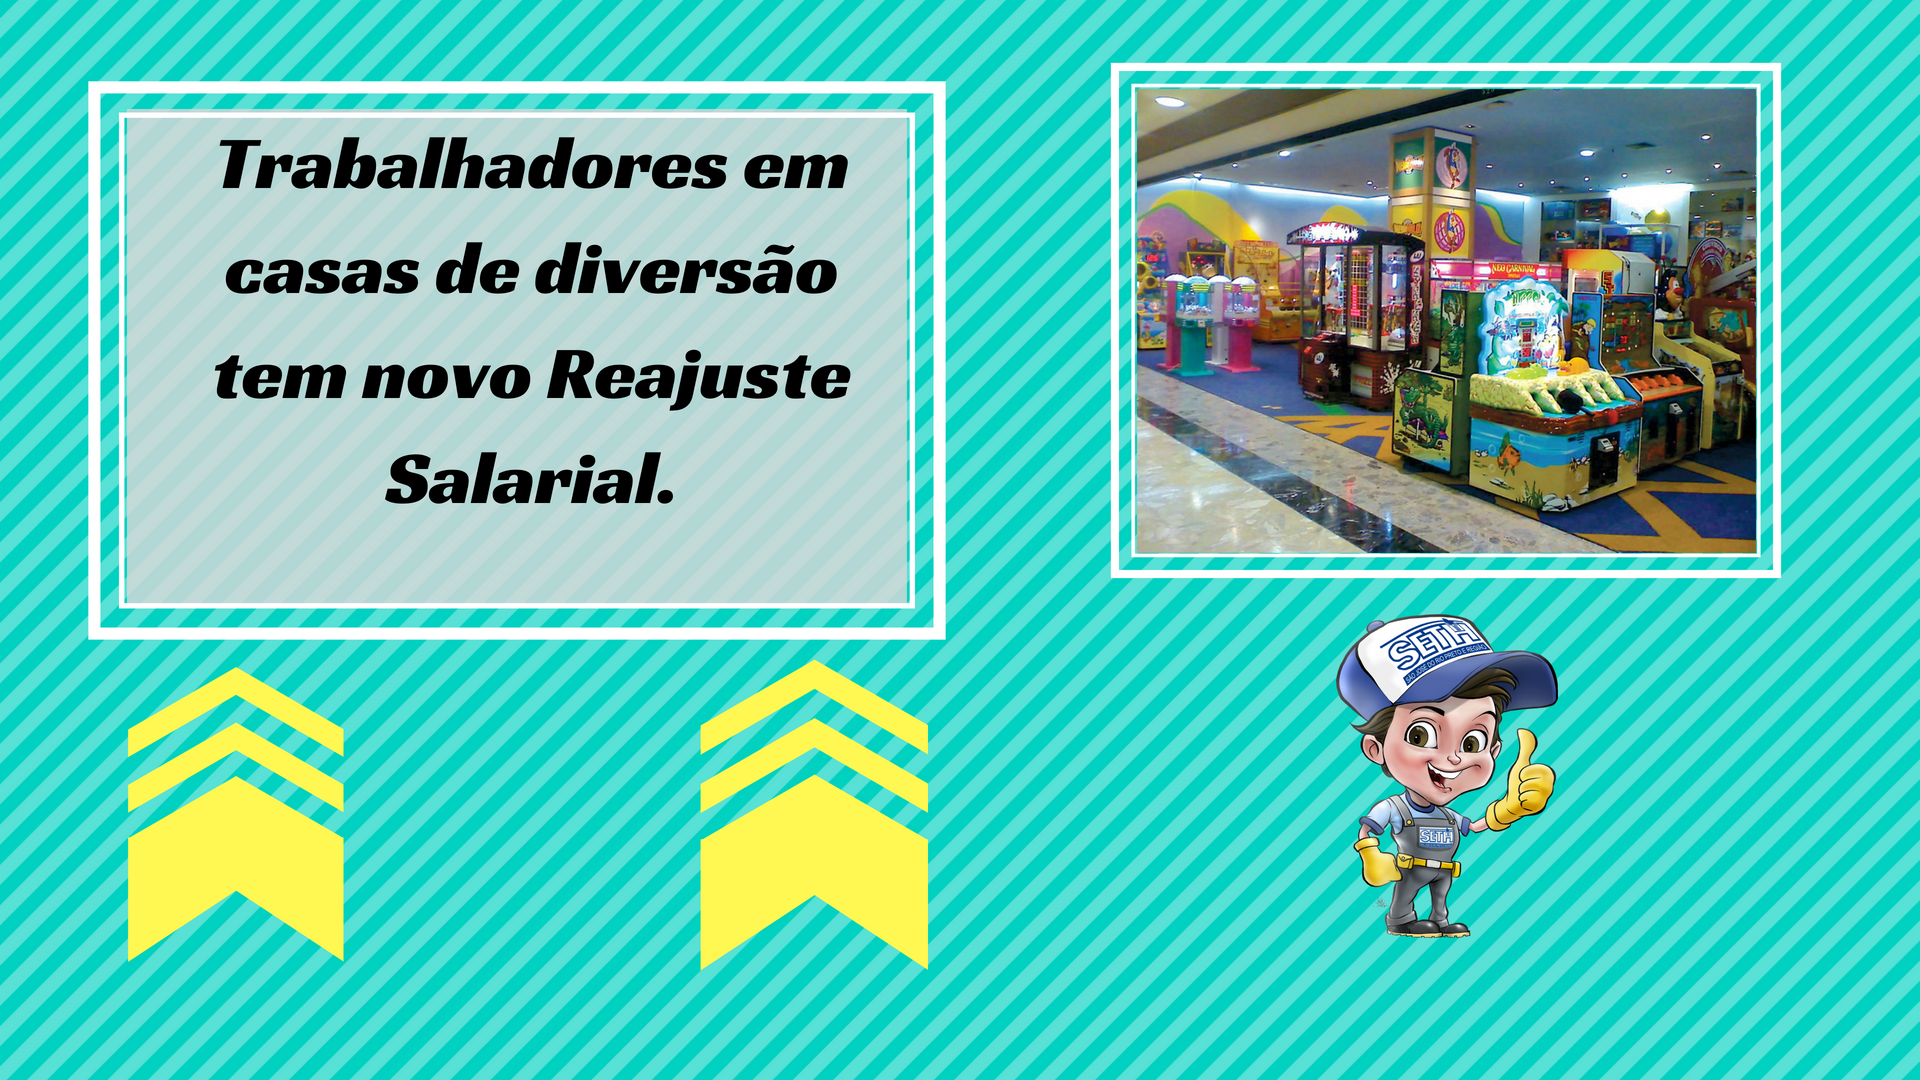 Novo reajuste salarial para a categoria.